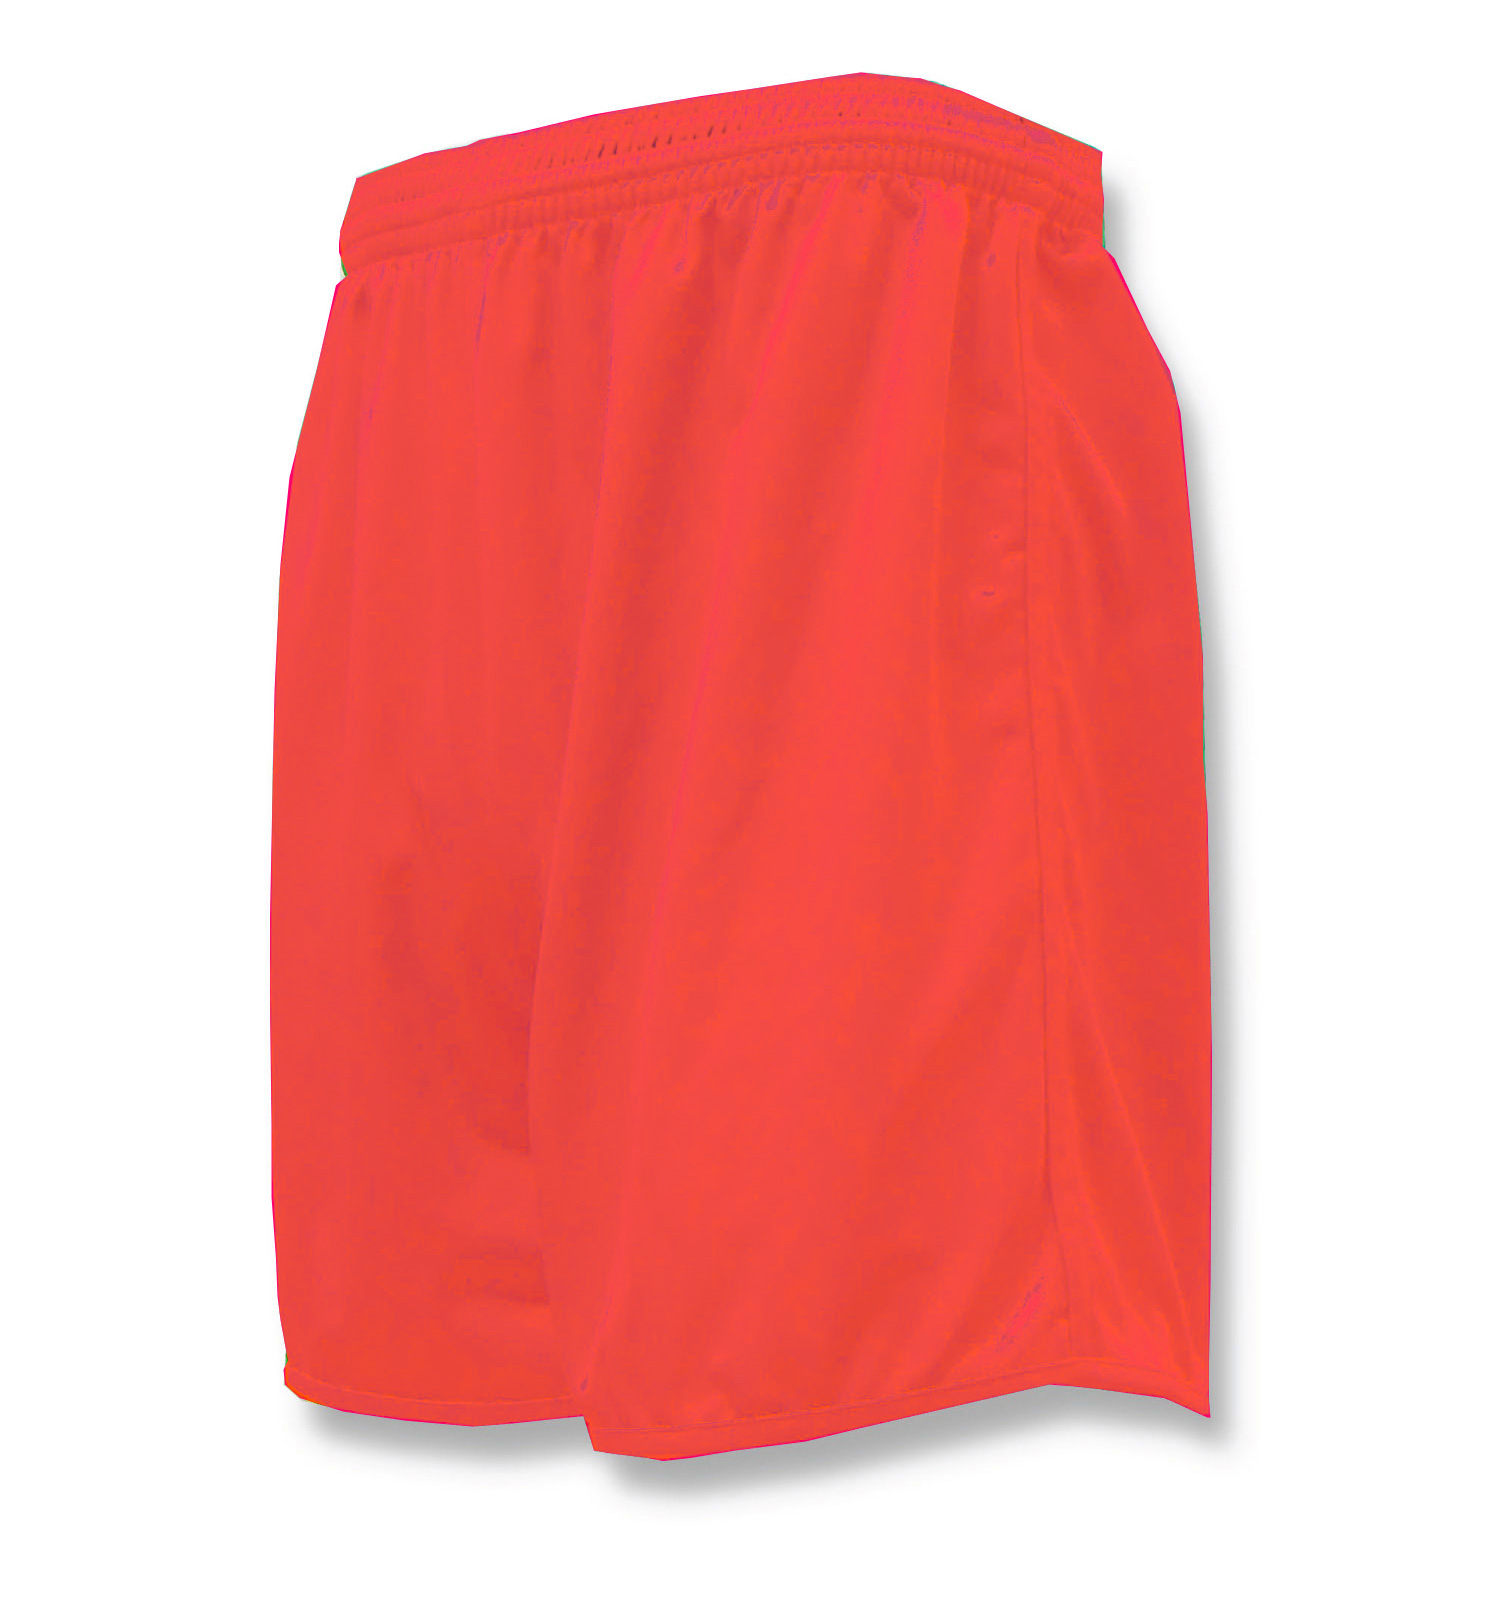 Bravo soccer shorts in orange by Code Four Athletics